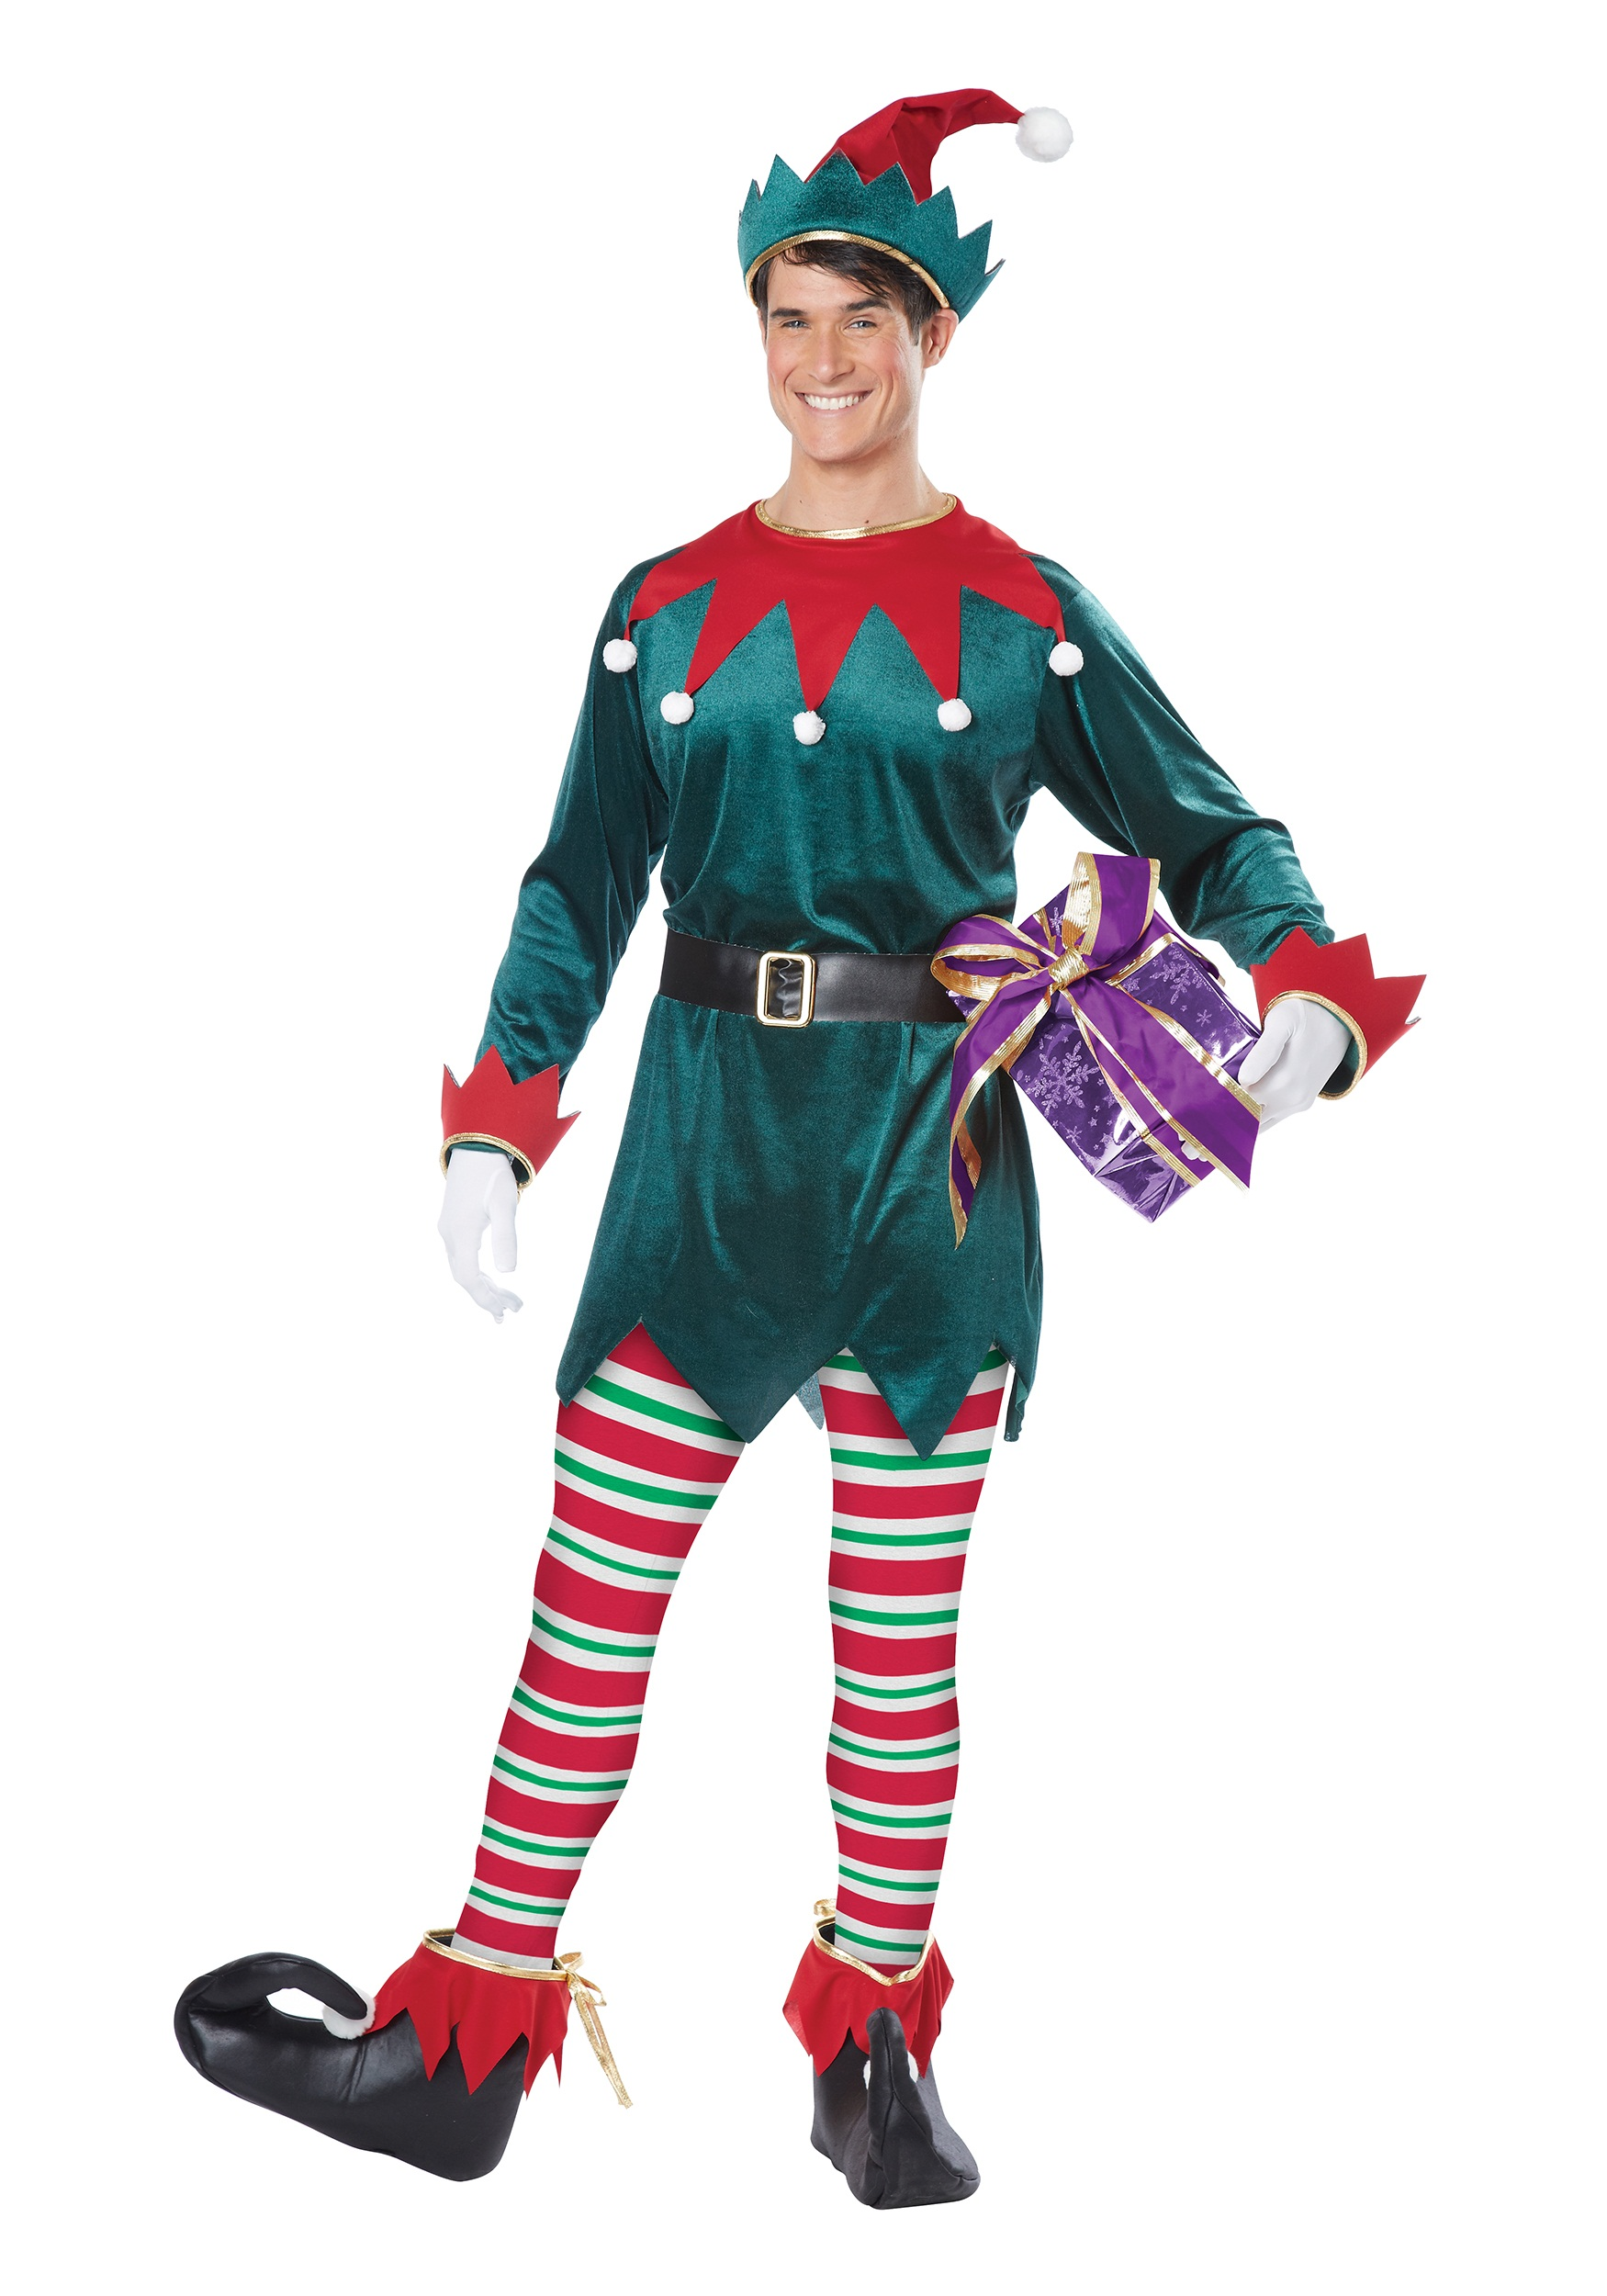 Christmas gown ideas 70s halloween - Adult Christmas Elf Costume